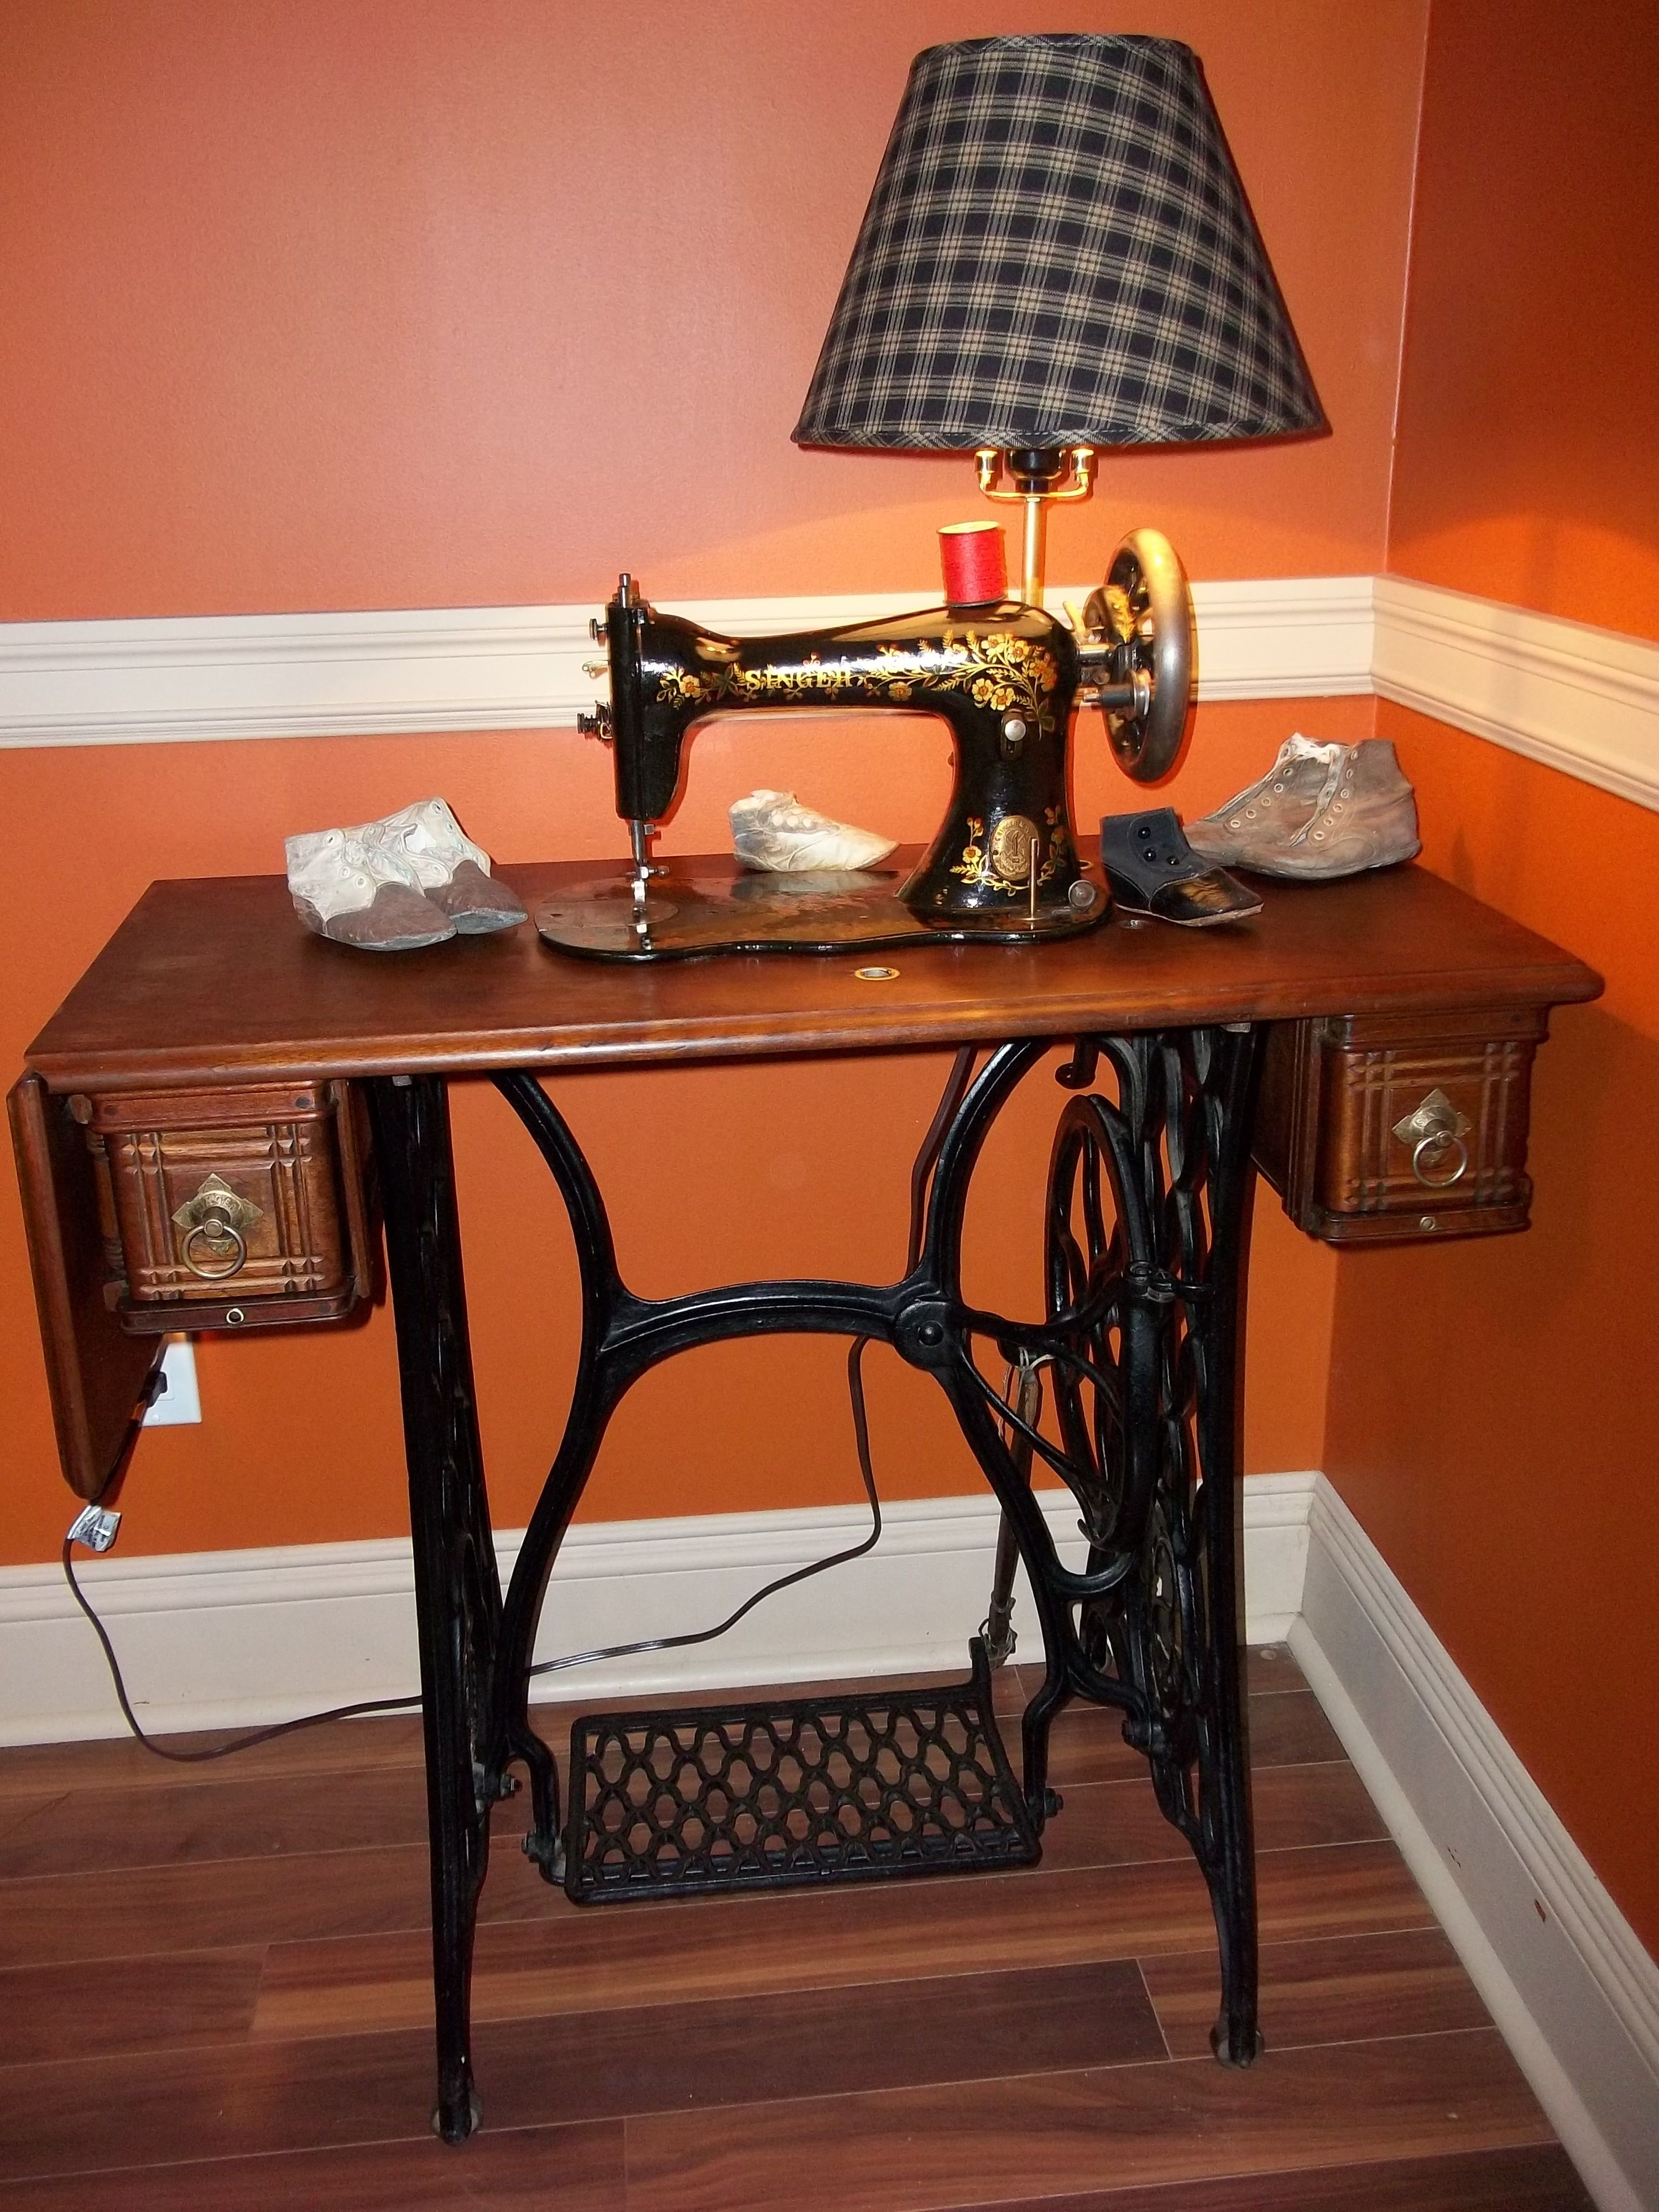 Repurposed Antique Sewing Machine Table Into A Table Lamp. Great For  Displaying Your Primitive Collection